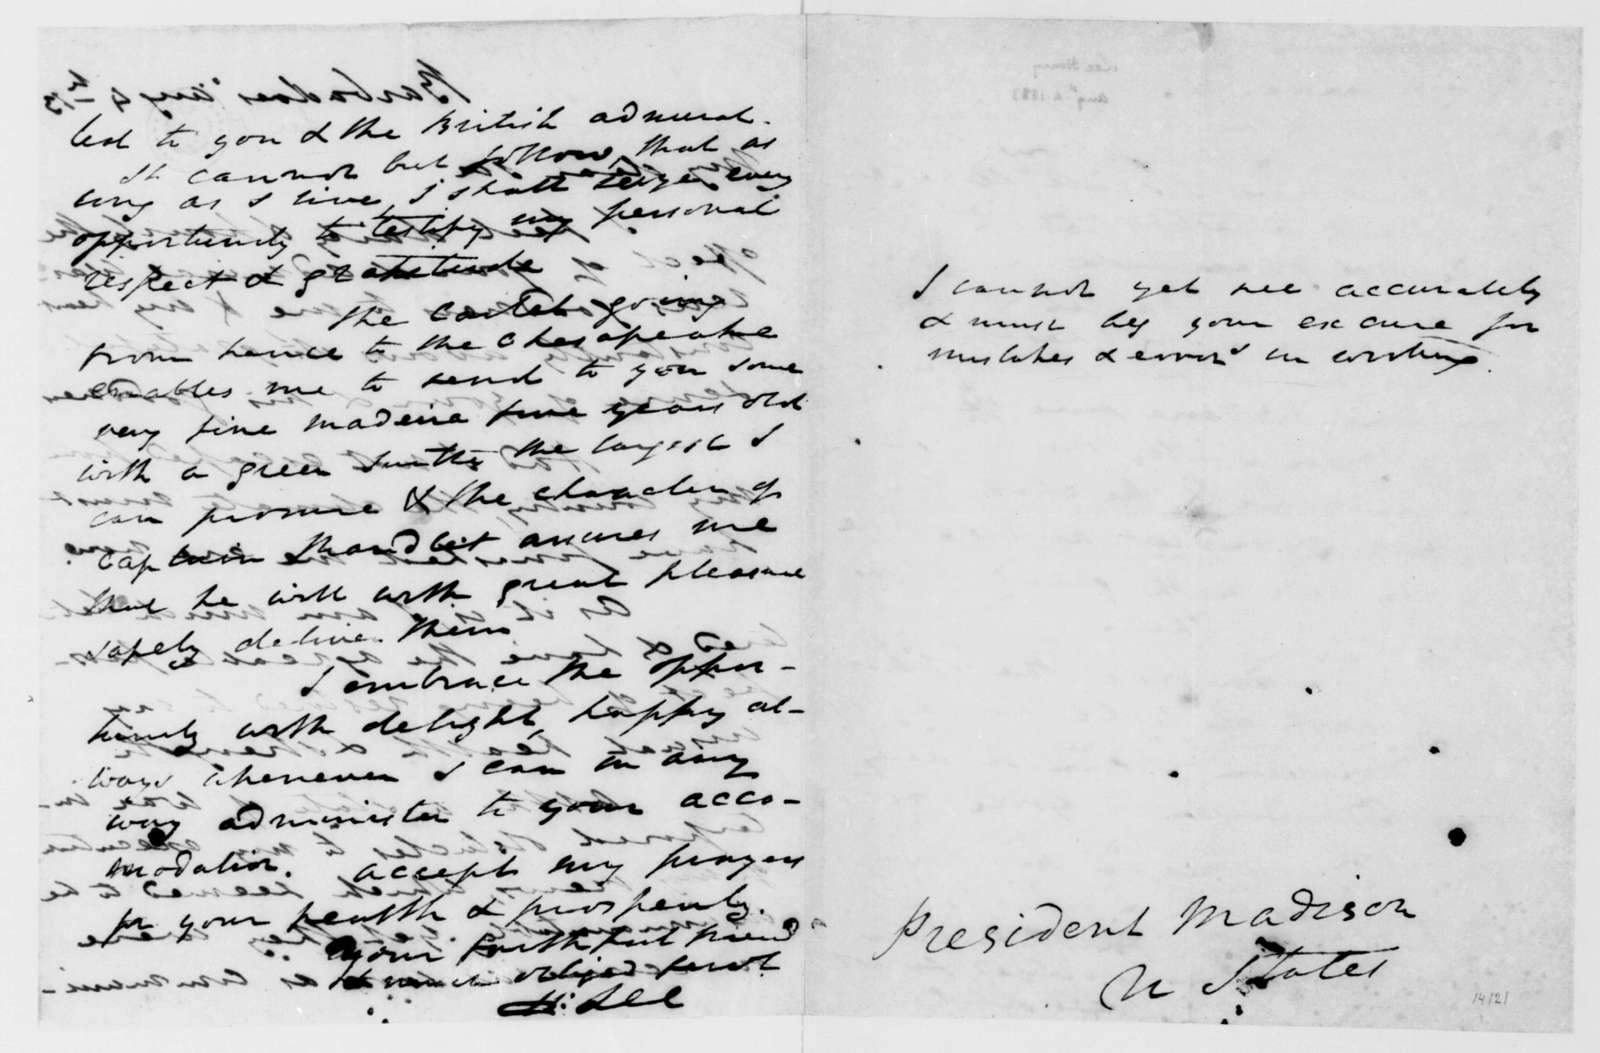 Henry Lee to James Madison, August 4, 1813.